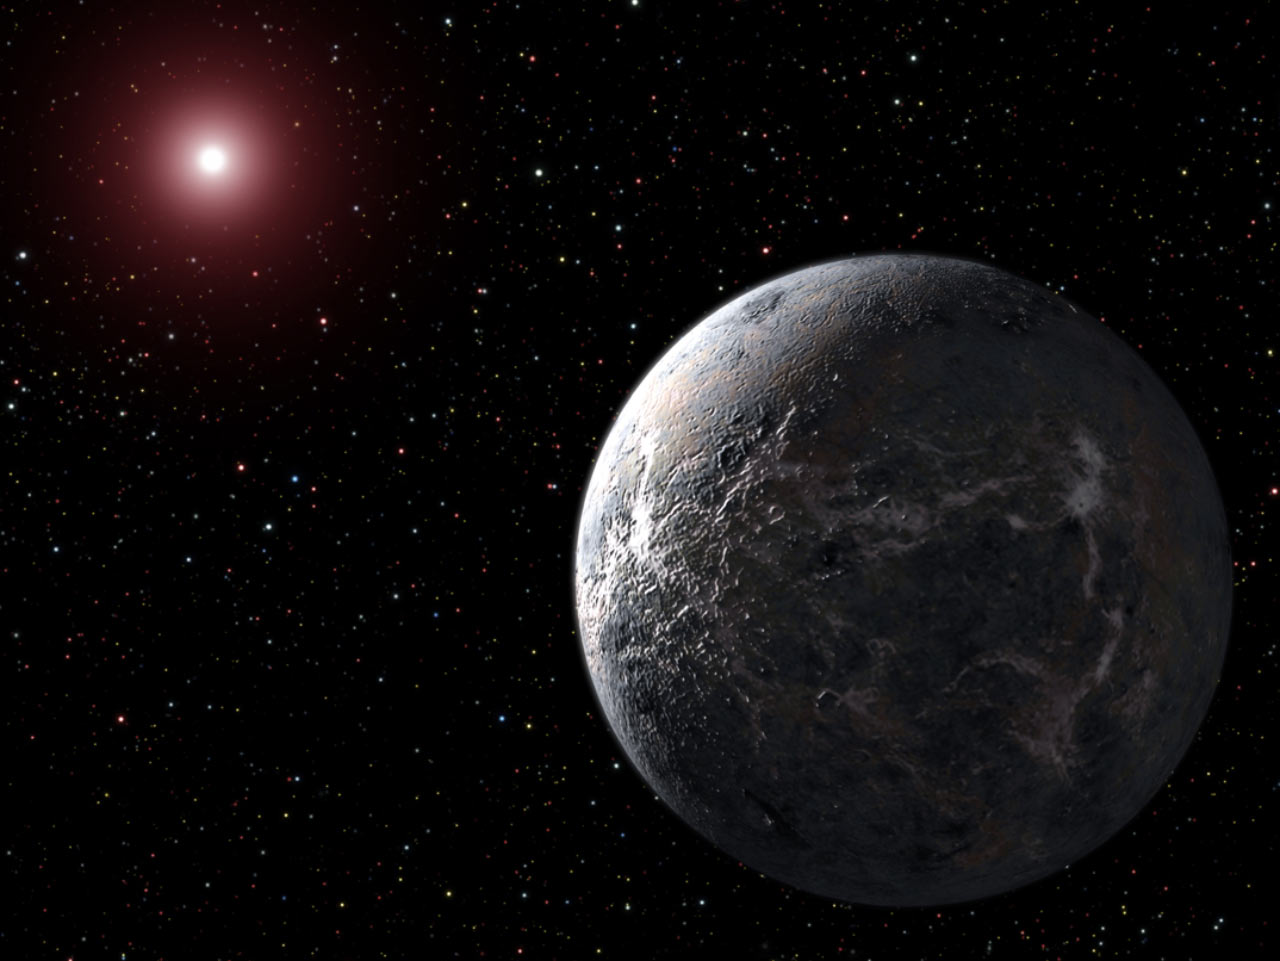 Earth-Like Planets Near Red Dwarf Stars | Azimuth